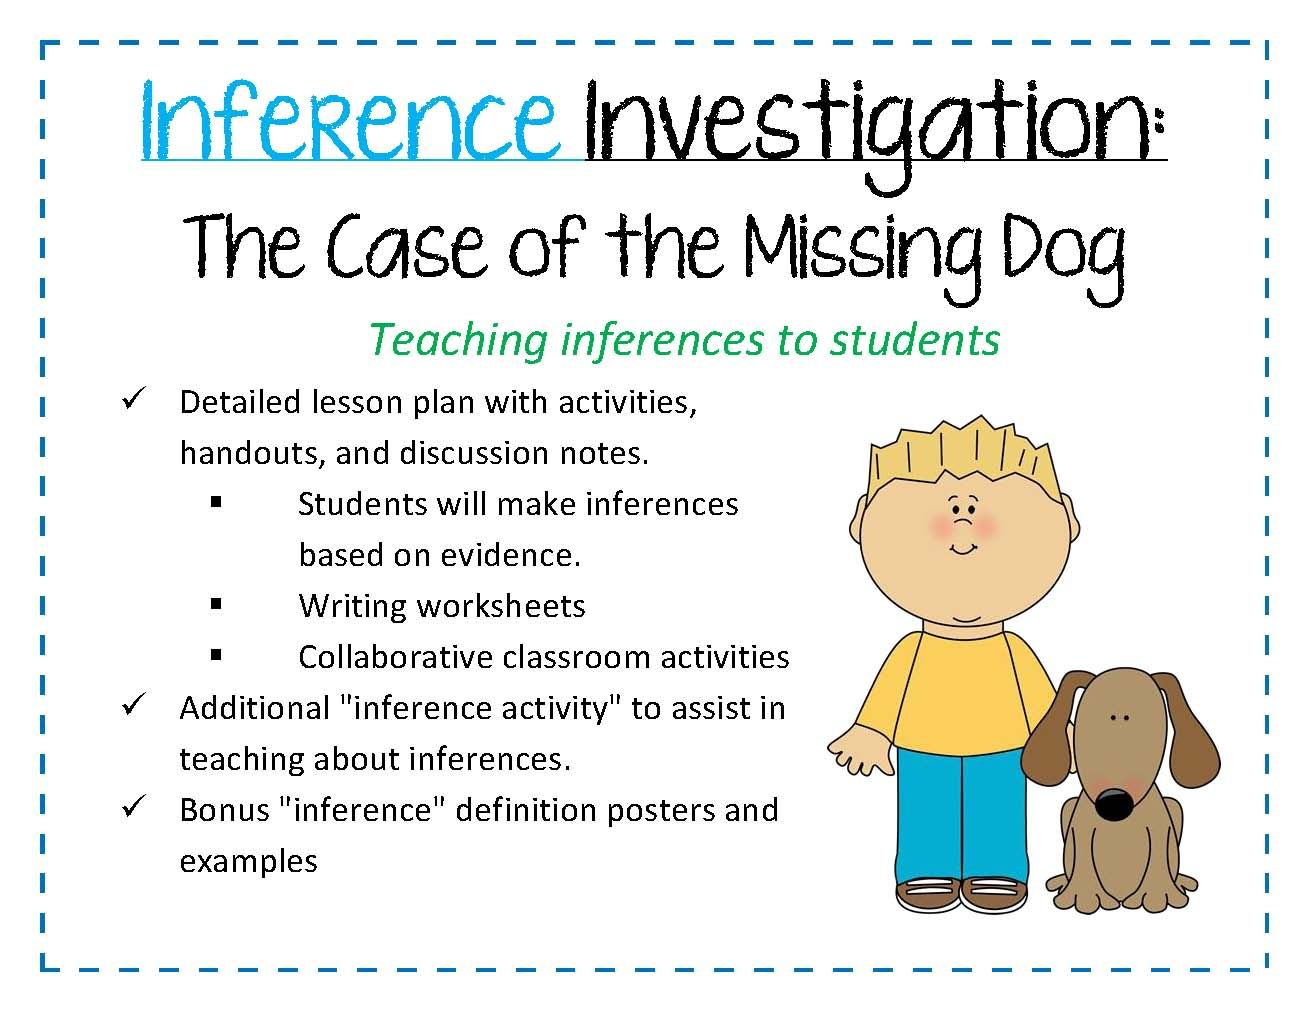 Lesson Plan On Teaching Inferences Inference Investigation The Case Of The Missing Dog